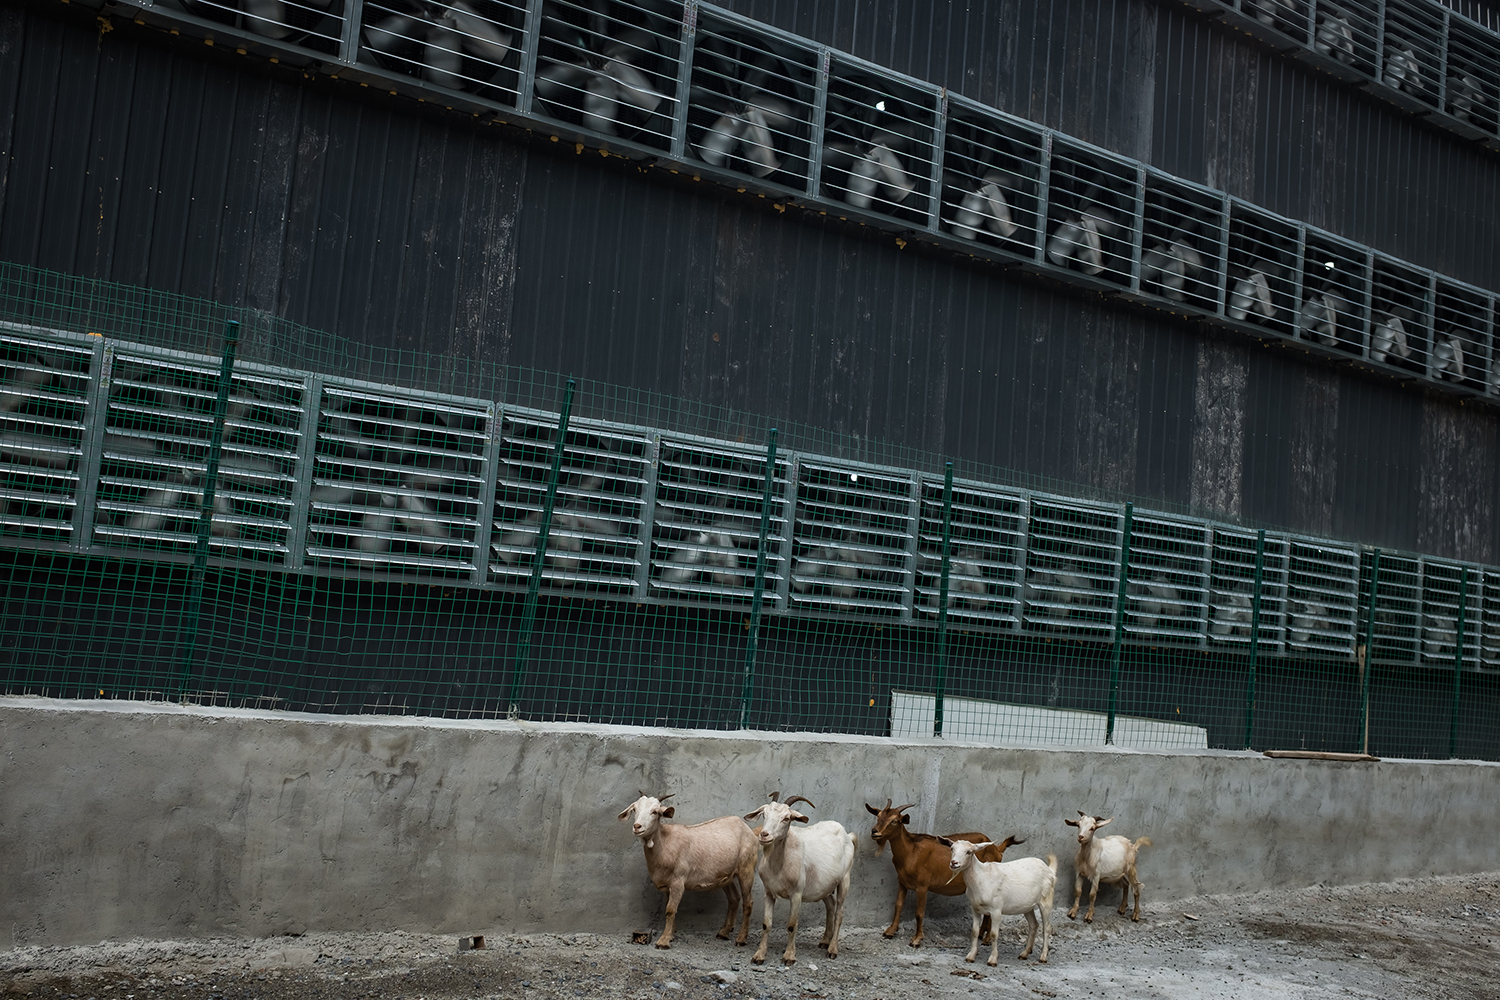 Goats from a nearby village walk among cooling fans at the mine, September 28, 2016.